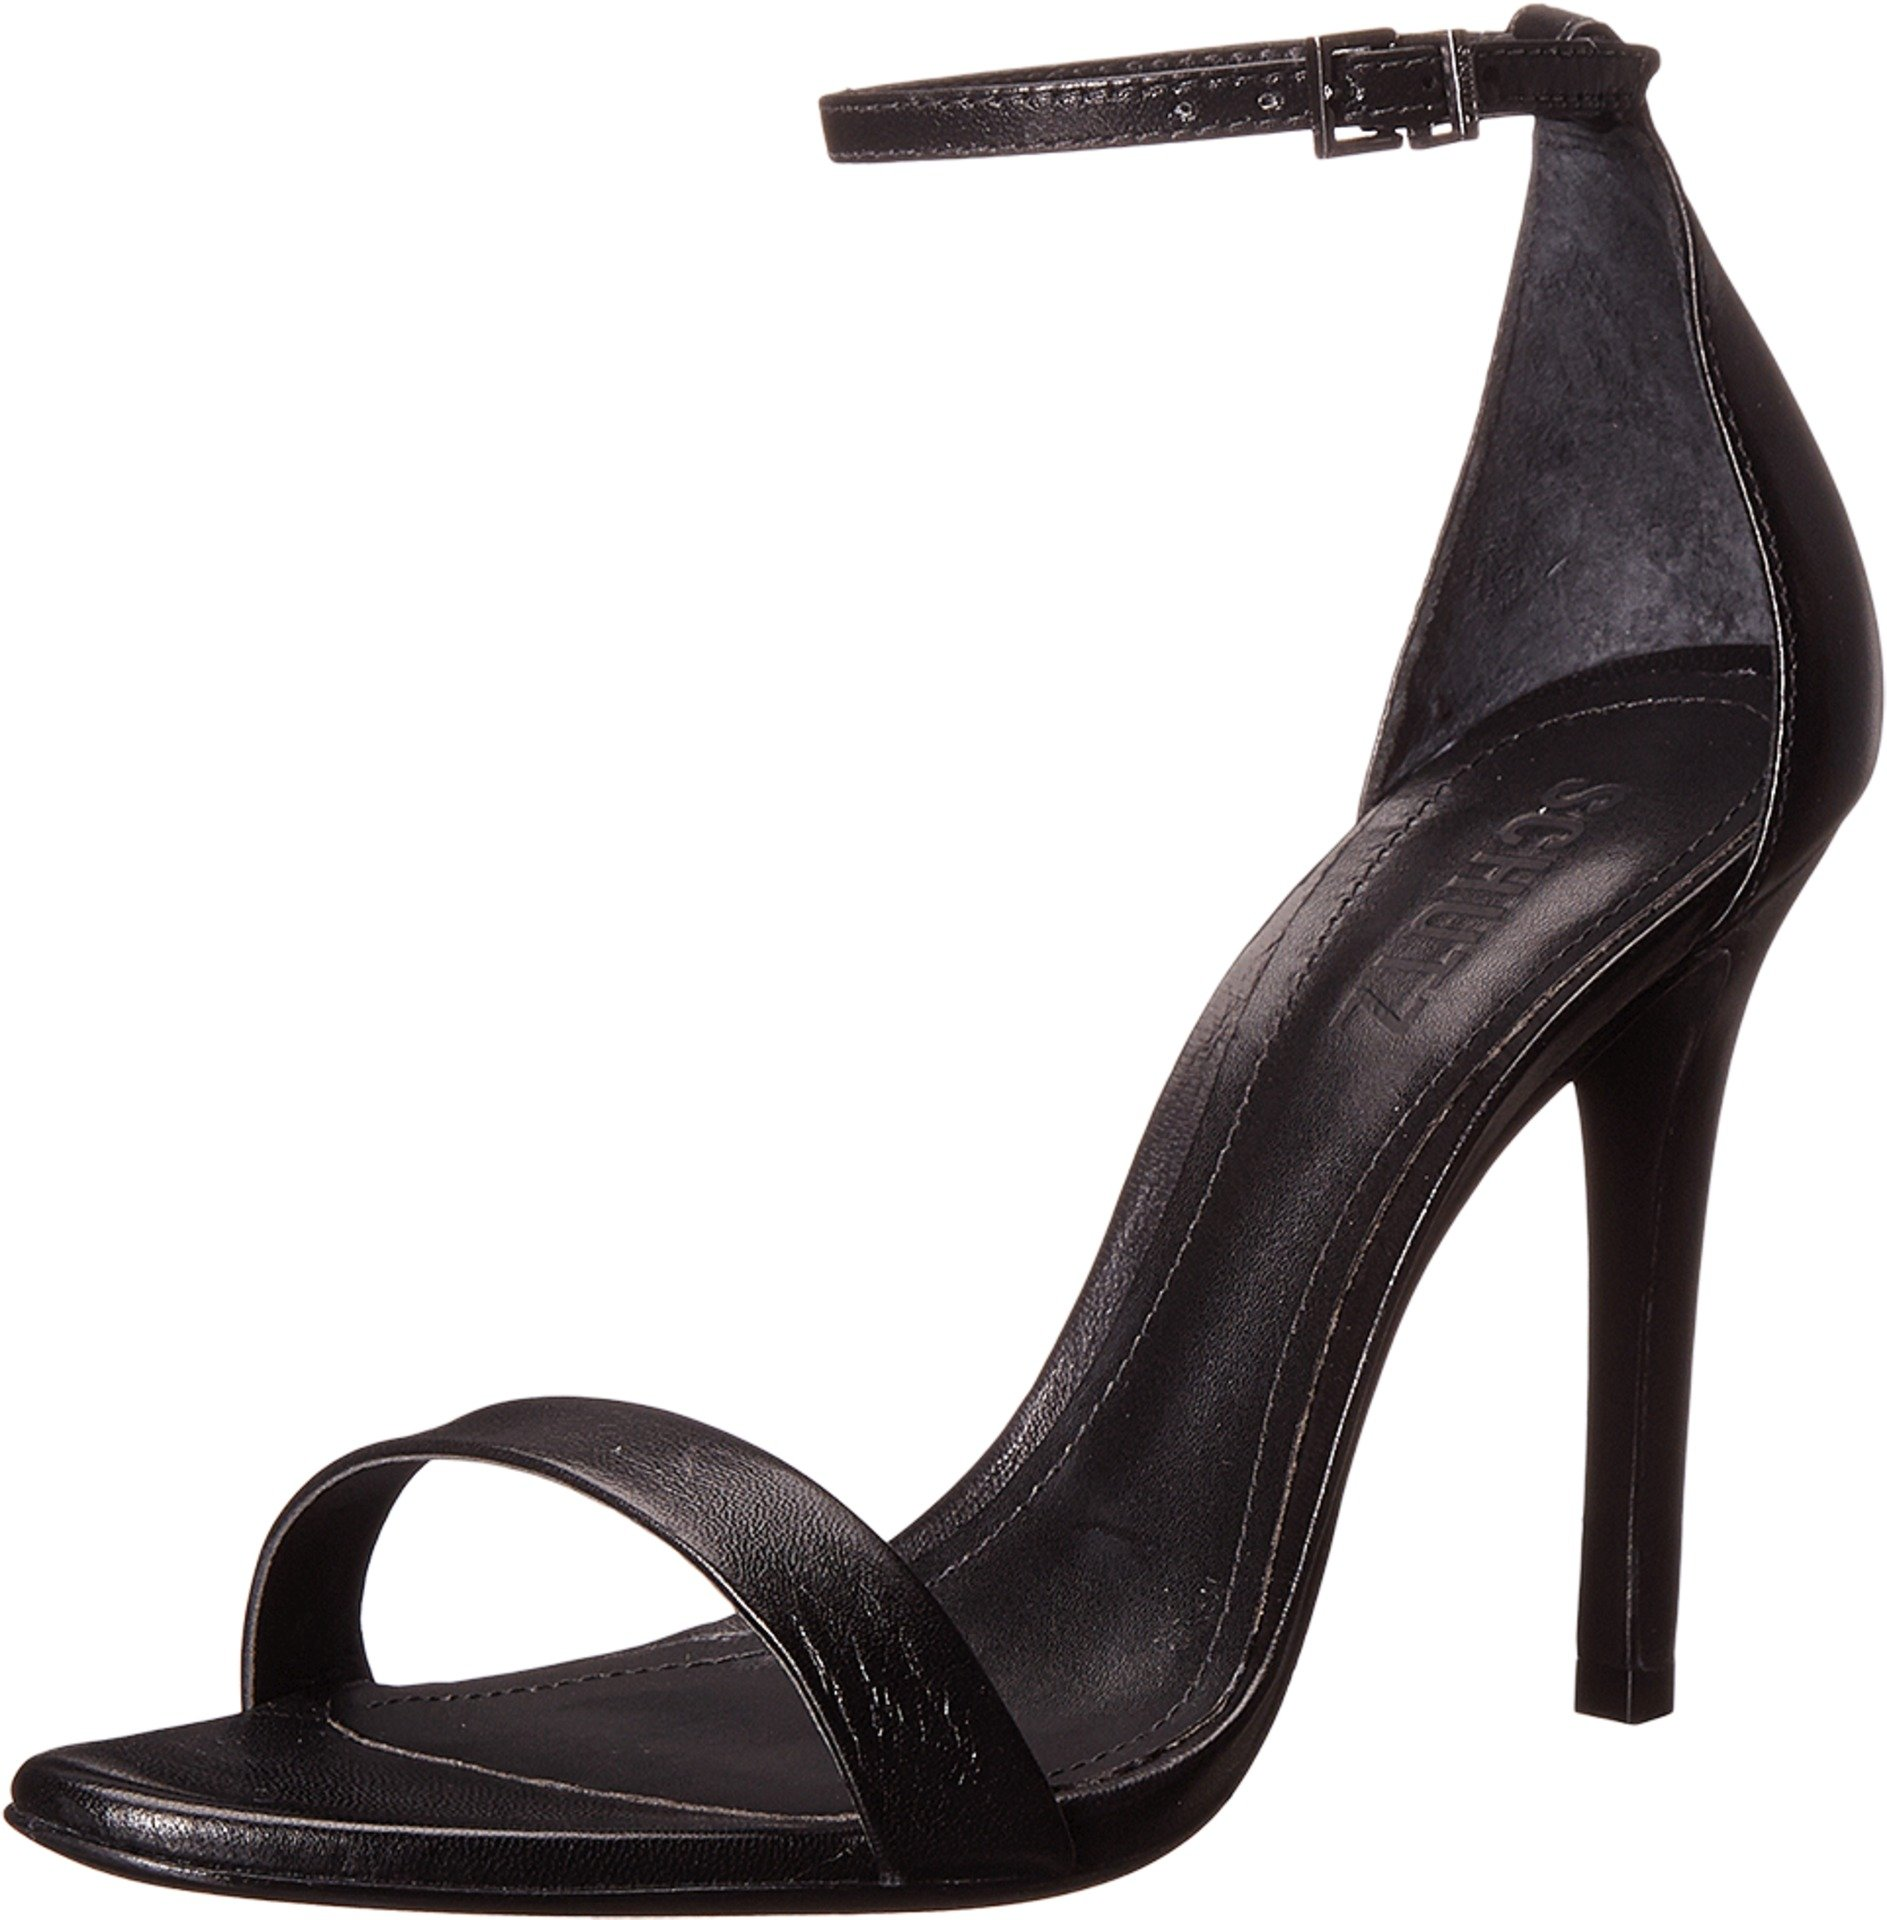 Schutz Women's Cadey-Lee Black 1 9 M US by SCHUTZ (Image #1)